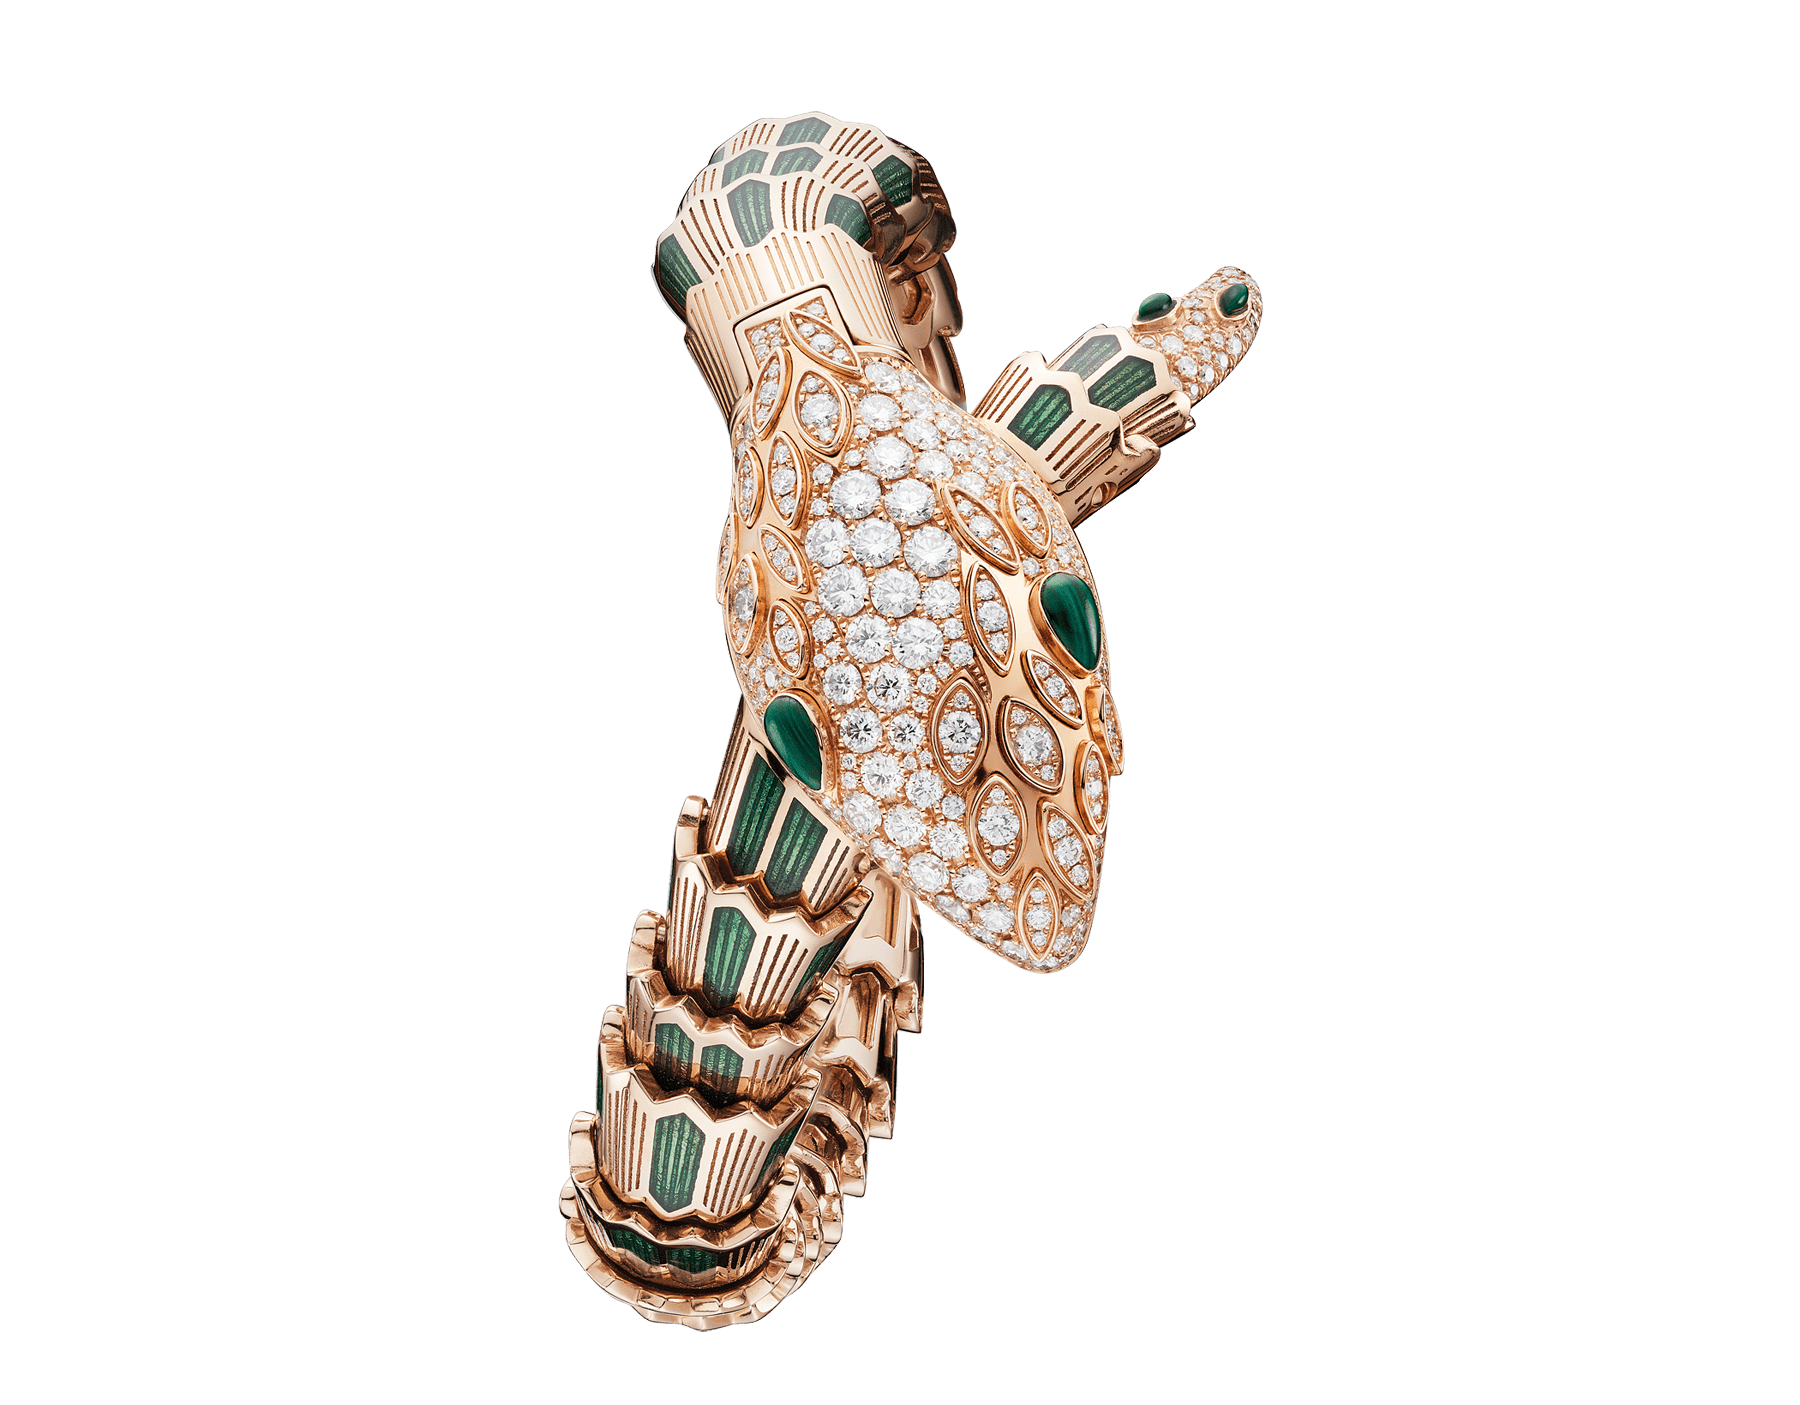 Serpenti Secret Watch with 18 kt rose gold head set with brilliant cut diamonds and malachite eyes, 18 kt rose gold case, 18 kt rose gold dial and single spiral bracelet, both set with brilliant cut diamonds, malachites and green enamel. 102240 image 1